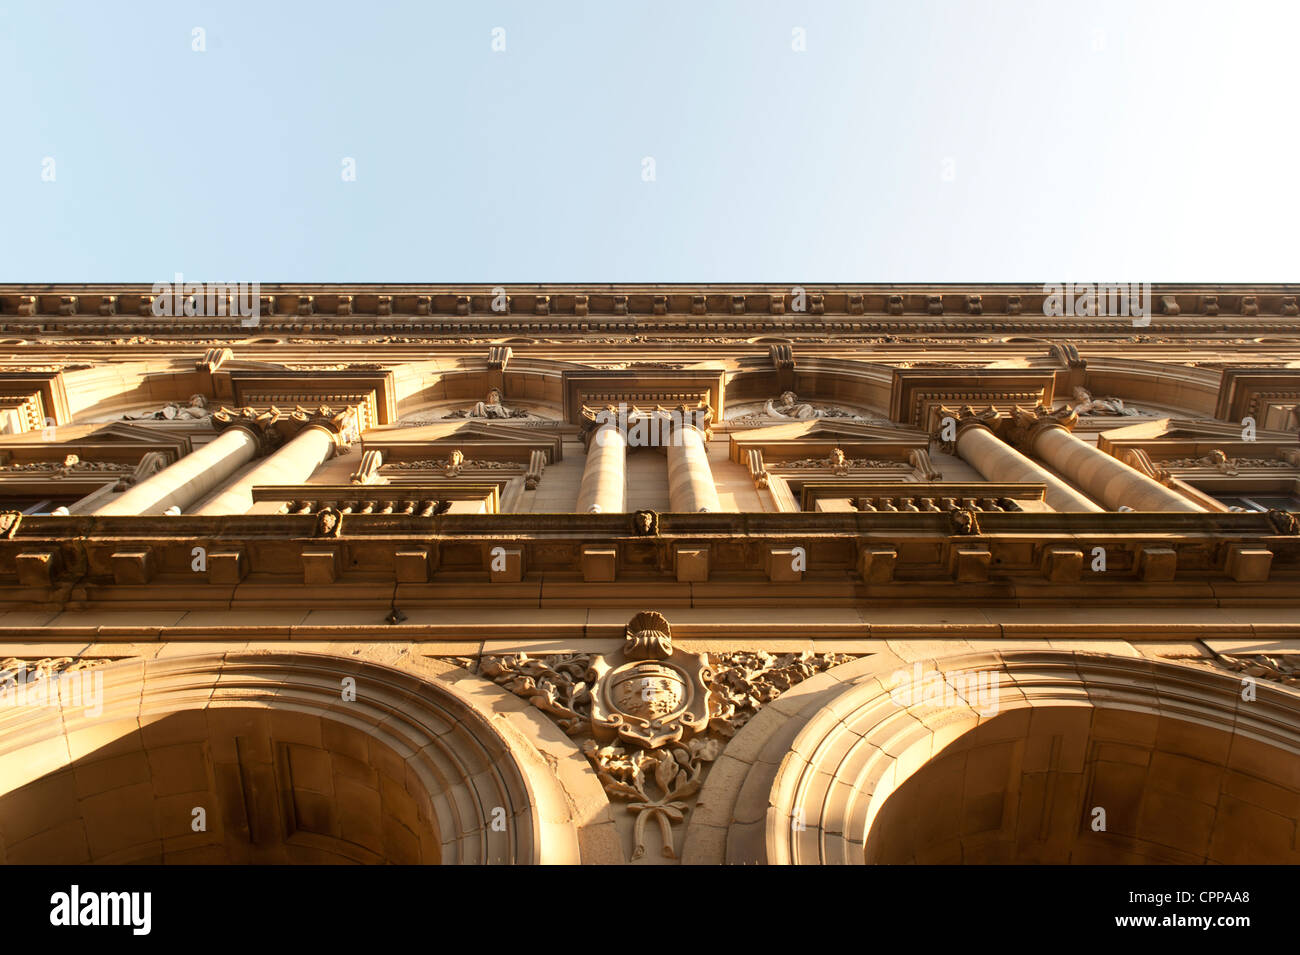 A detail of the front of the The Free Trade Hall (Radisson Edwardian Hotel), Peter Street, Manchester. - Stock Image